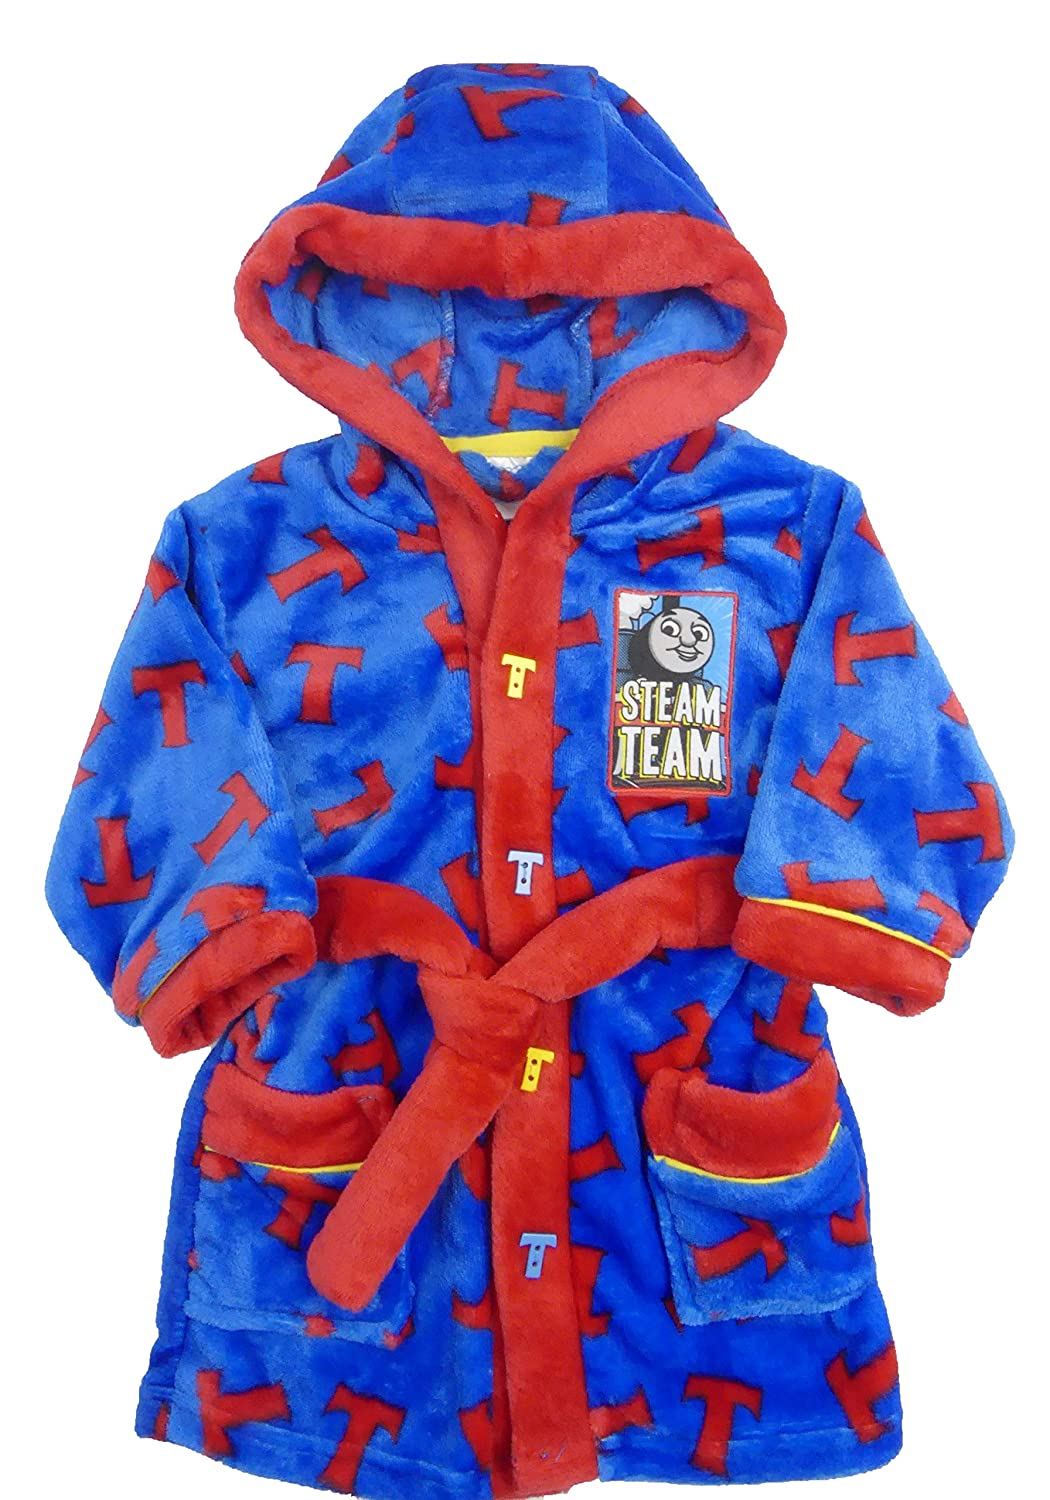 Thomas the Tank Engine Flannel Fleece Dressing Gown 12-18m 18-24m